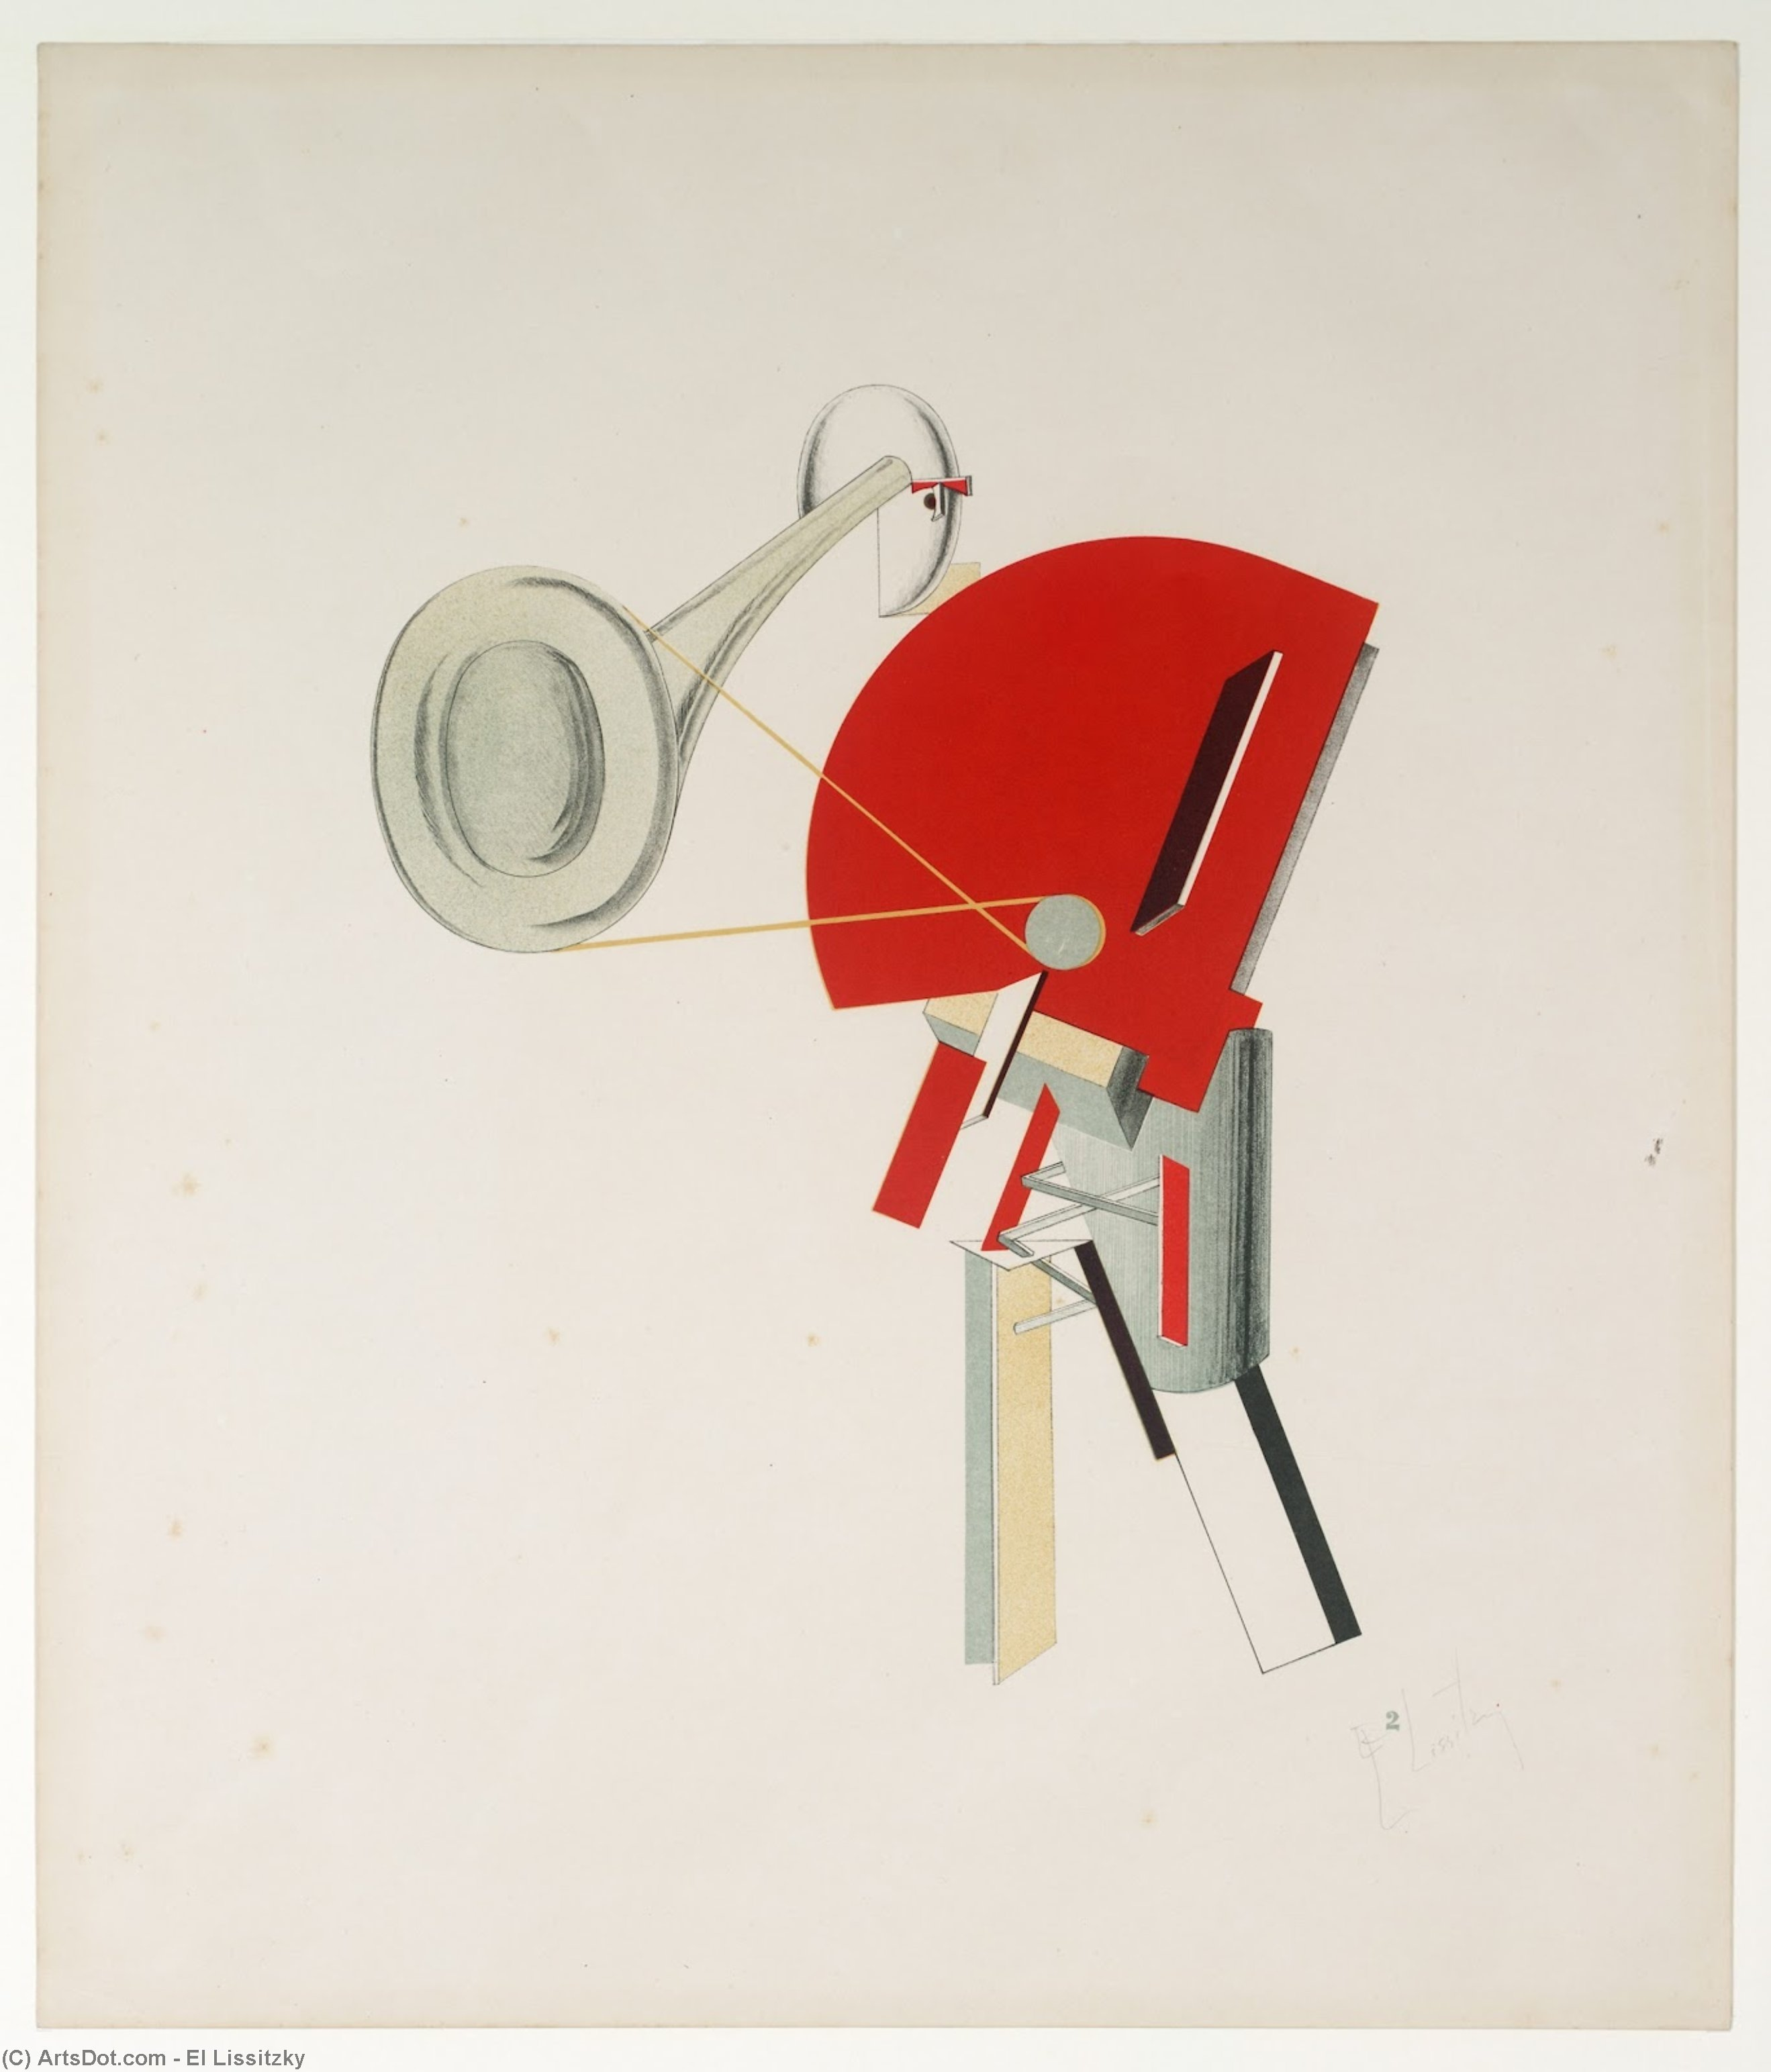 Order Paintings Reproductions | Announcer, 1923 by El Lissitzky (1890-1941, Russia) | ArtsDot.com